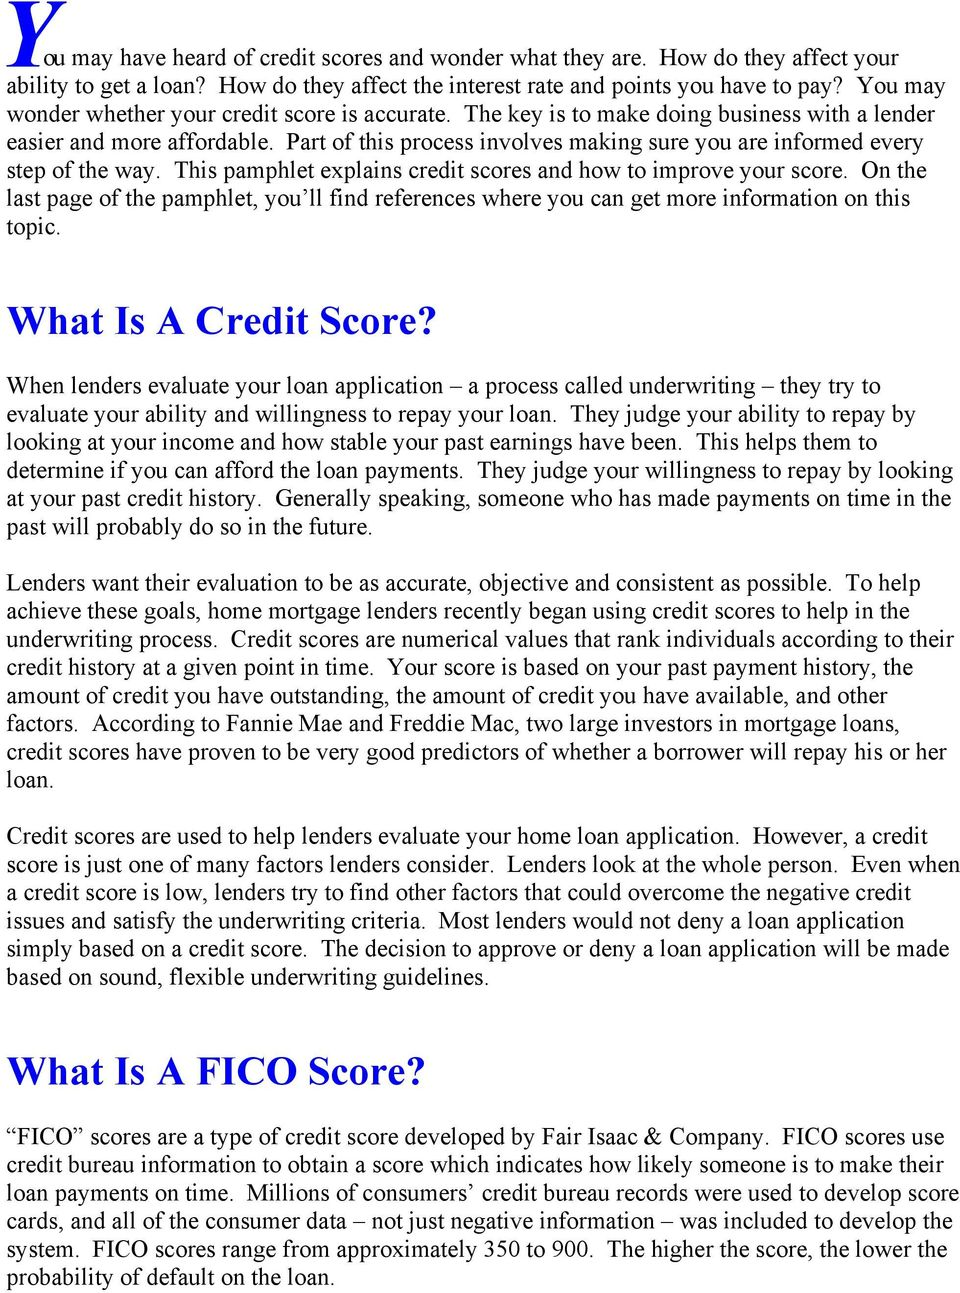 Part of this process involves making sure you are informed every step of the way. This pamphlet explains credit scores and how to improve your score.